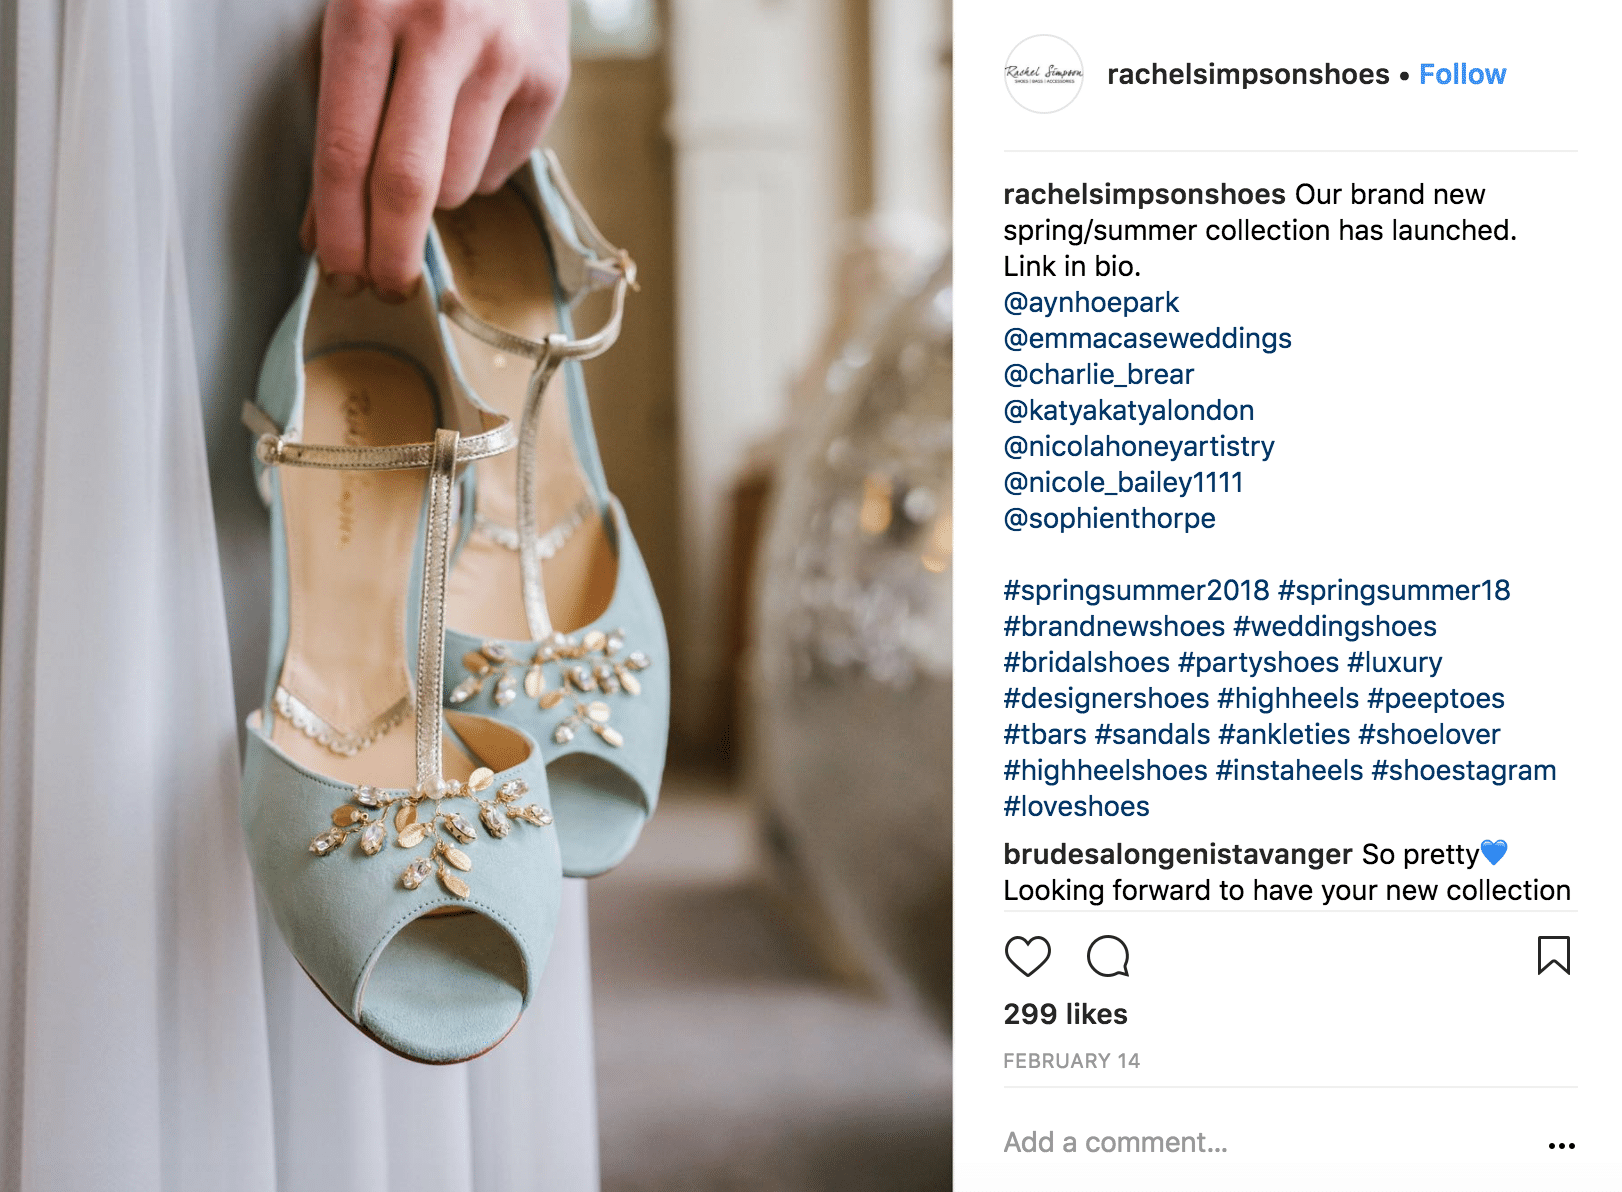 Instagram accounts to follow-rachelsimpsonshoes